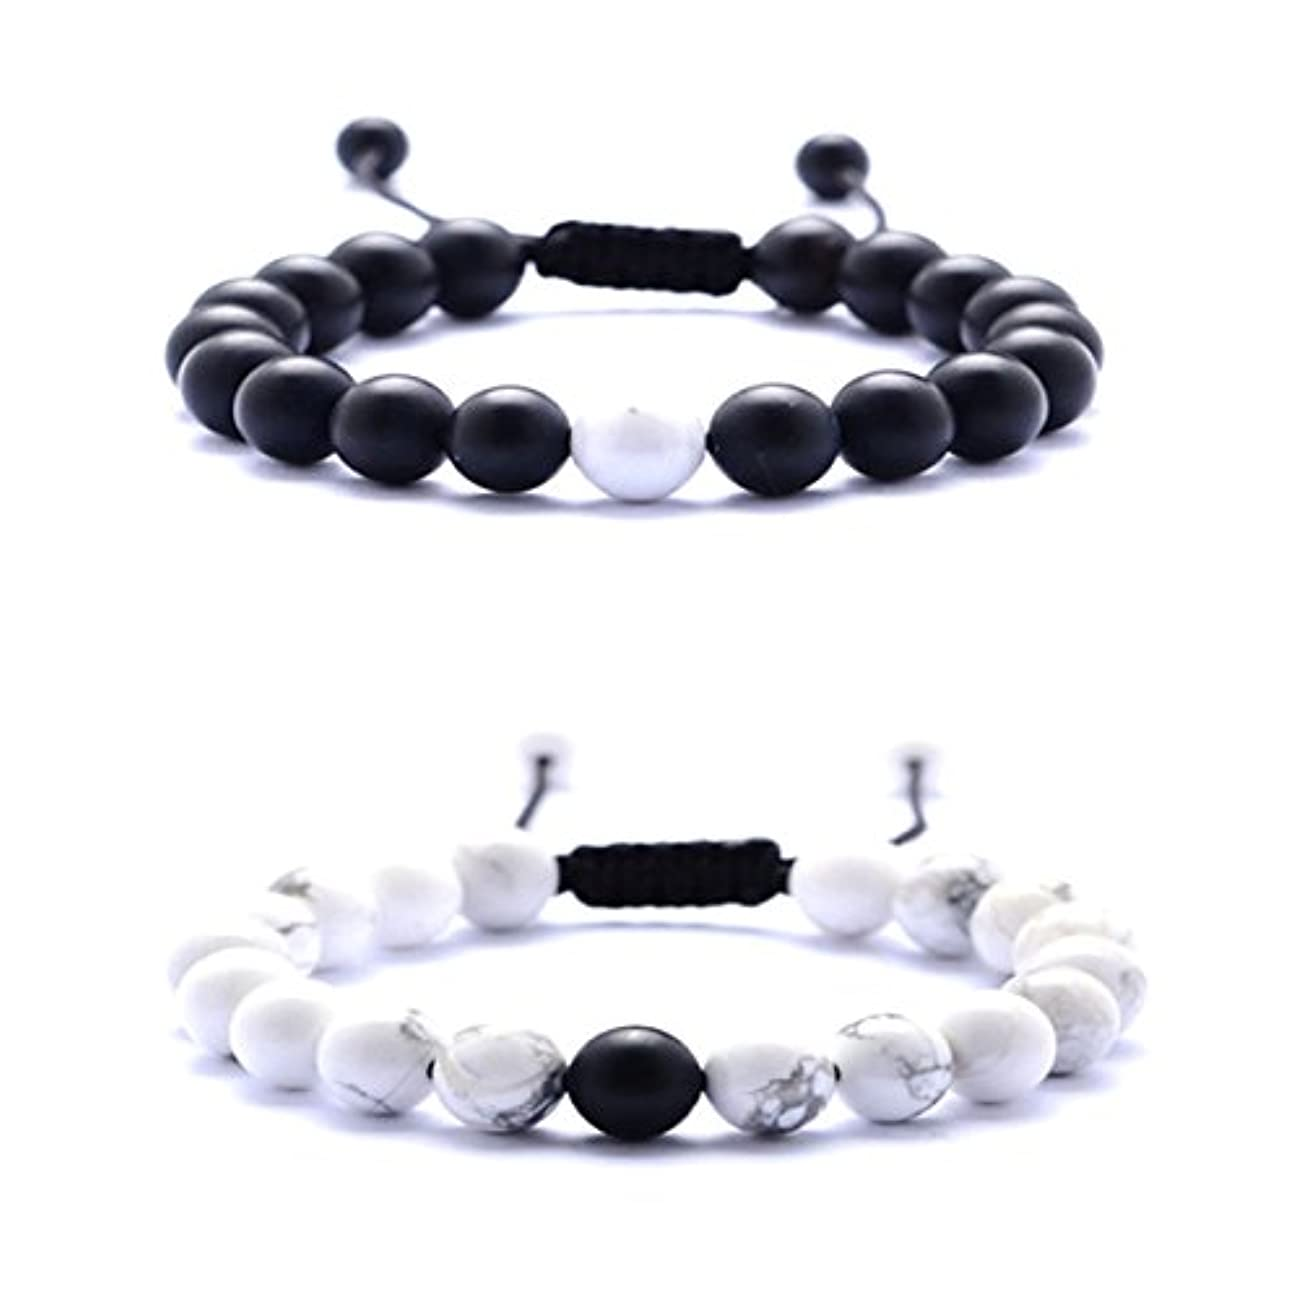 Couples Distance 8mm Beads Braided Bracelets - White Howlite and Black Matte Agate Couple Fashion Bracelet for Birthday Valentine Christmas (A#)